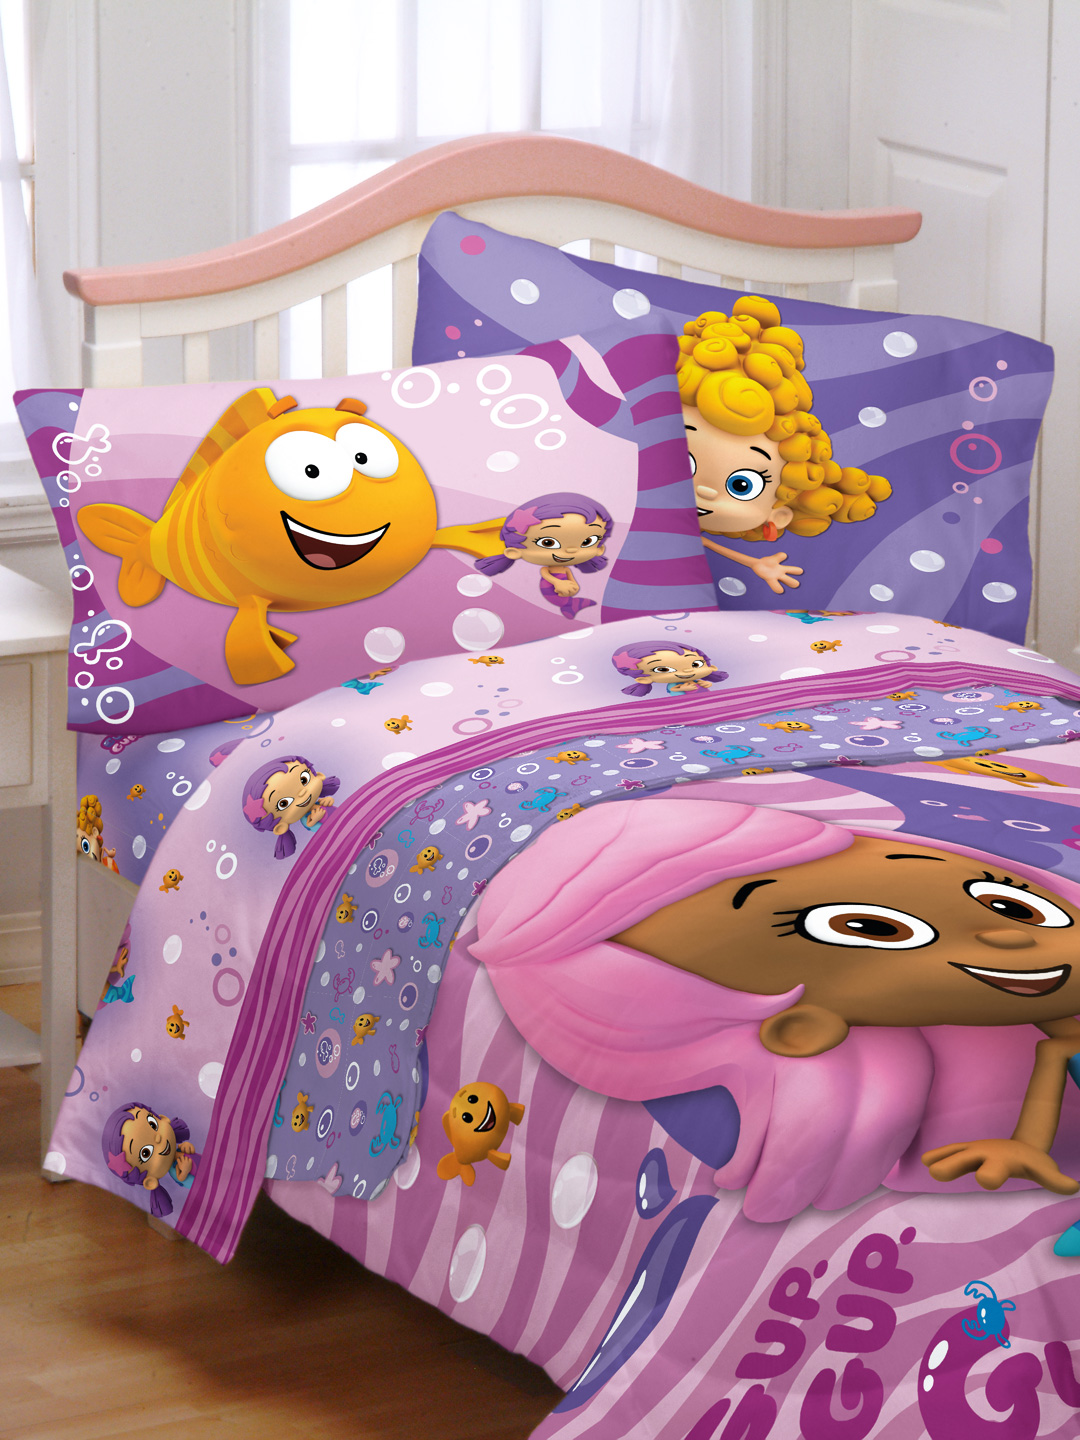 Bubble Guppies Bedding Set | Bubble Guppies Twin Bedding | Bubble Guppies Bedding